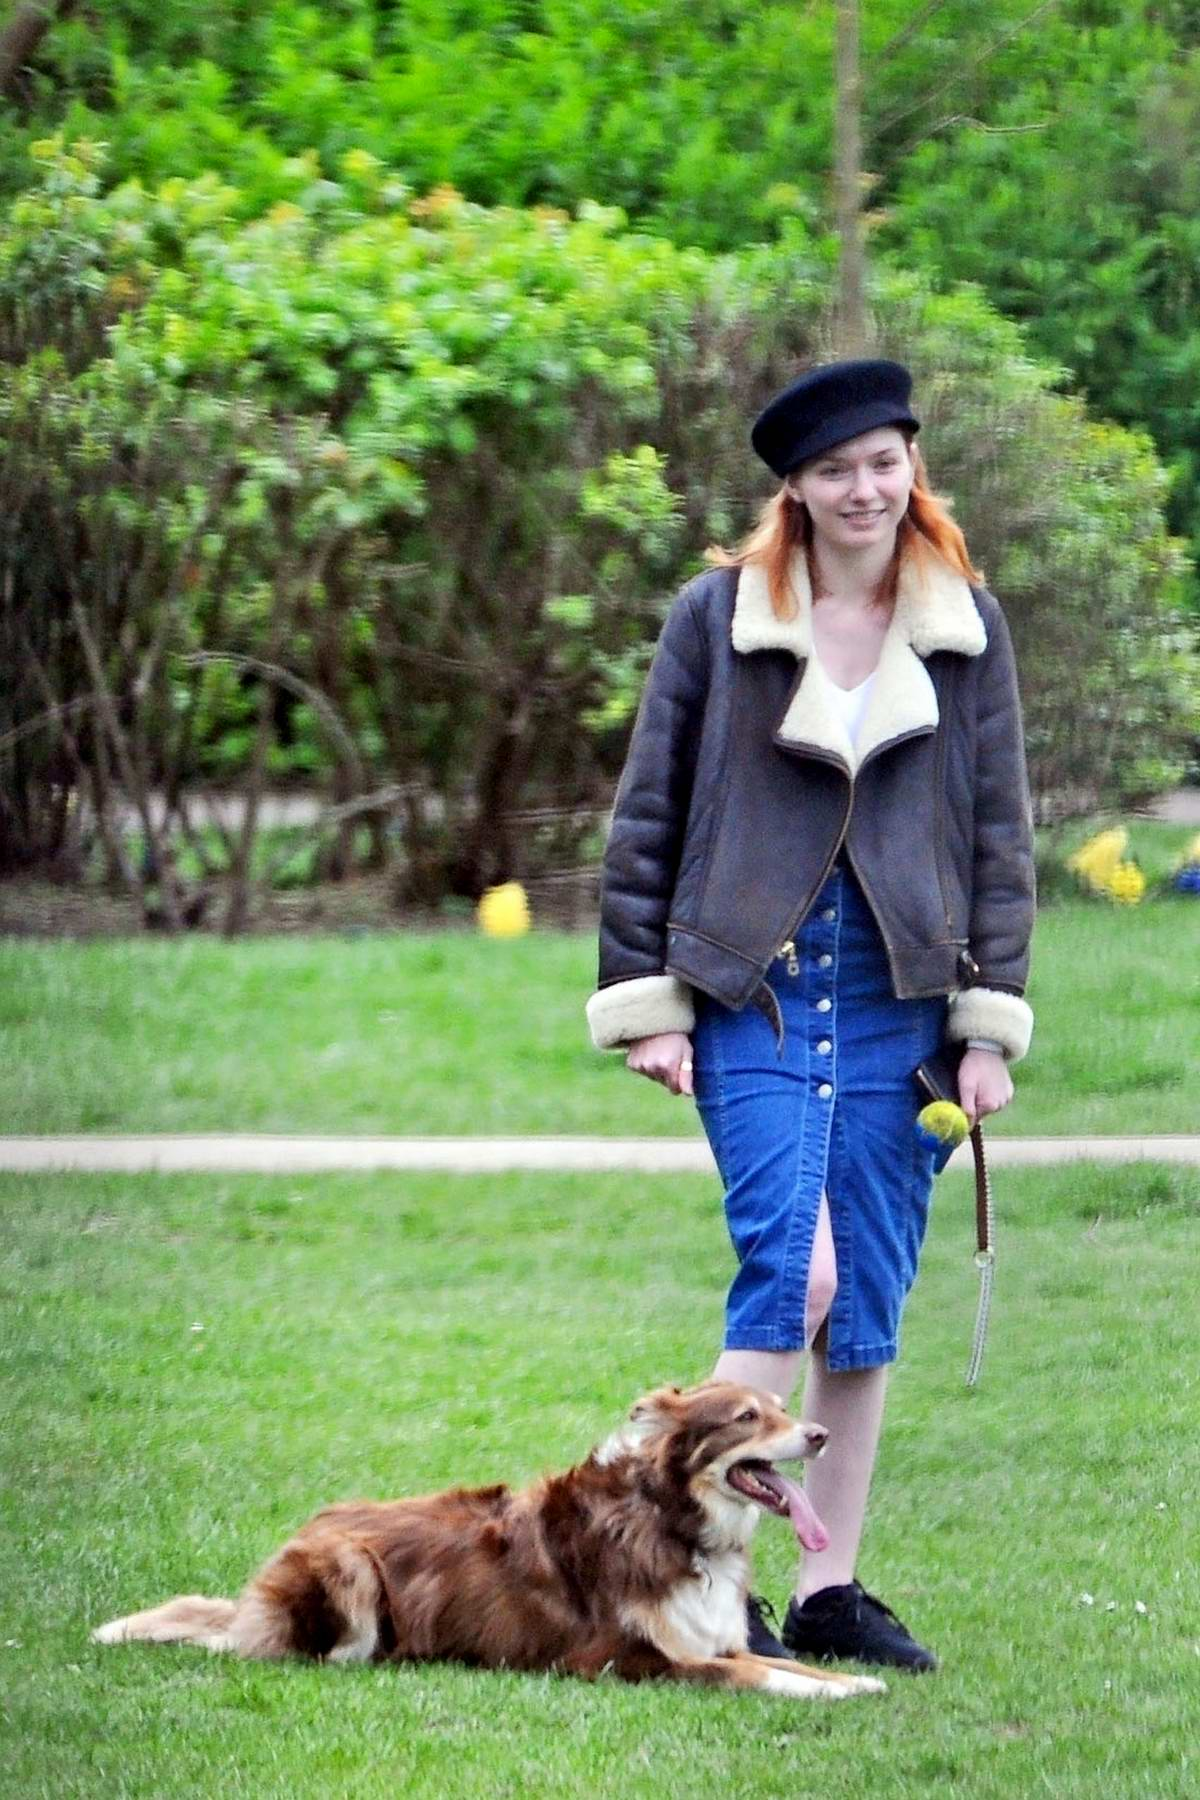 eleanor tomlinson enjoying some playtime out with her dog ...